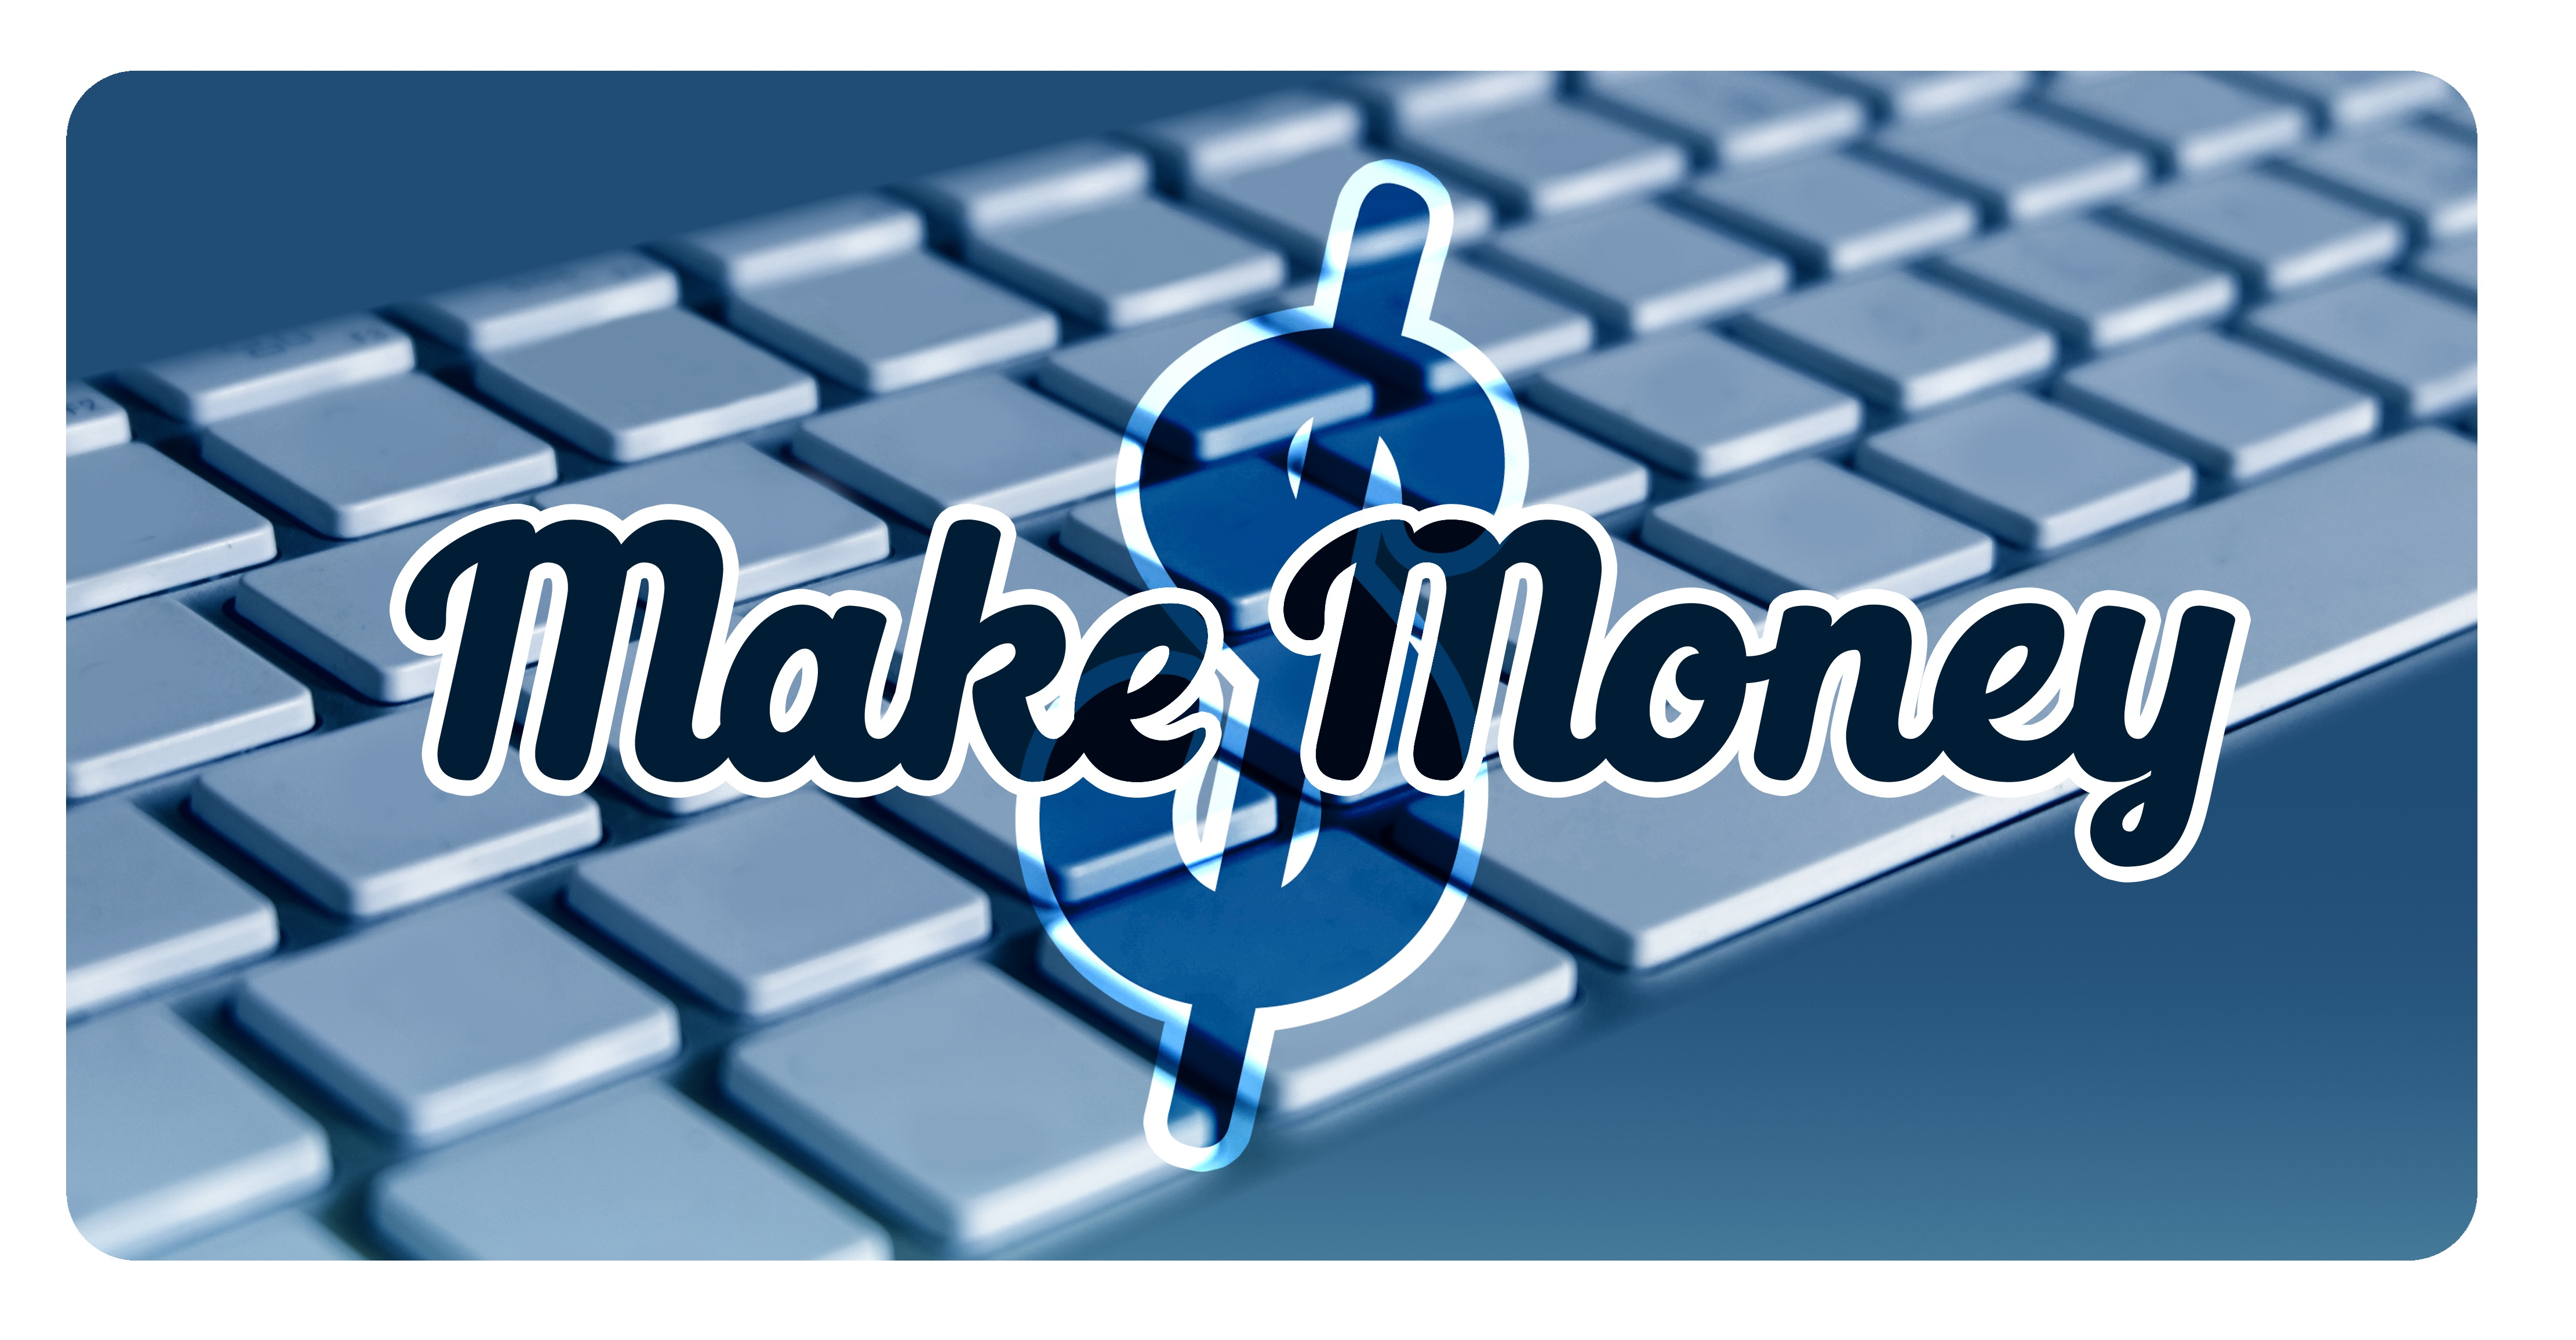 Do You Want to Learn About Fresh and Trendy Ways to Make Money Online in 2020